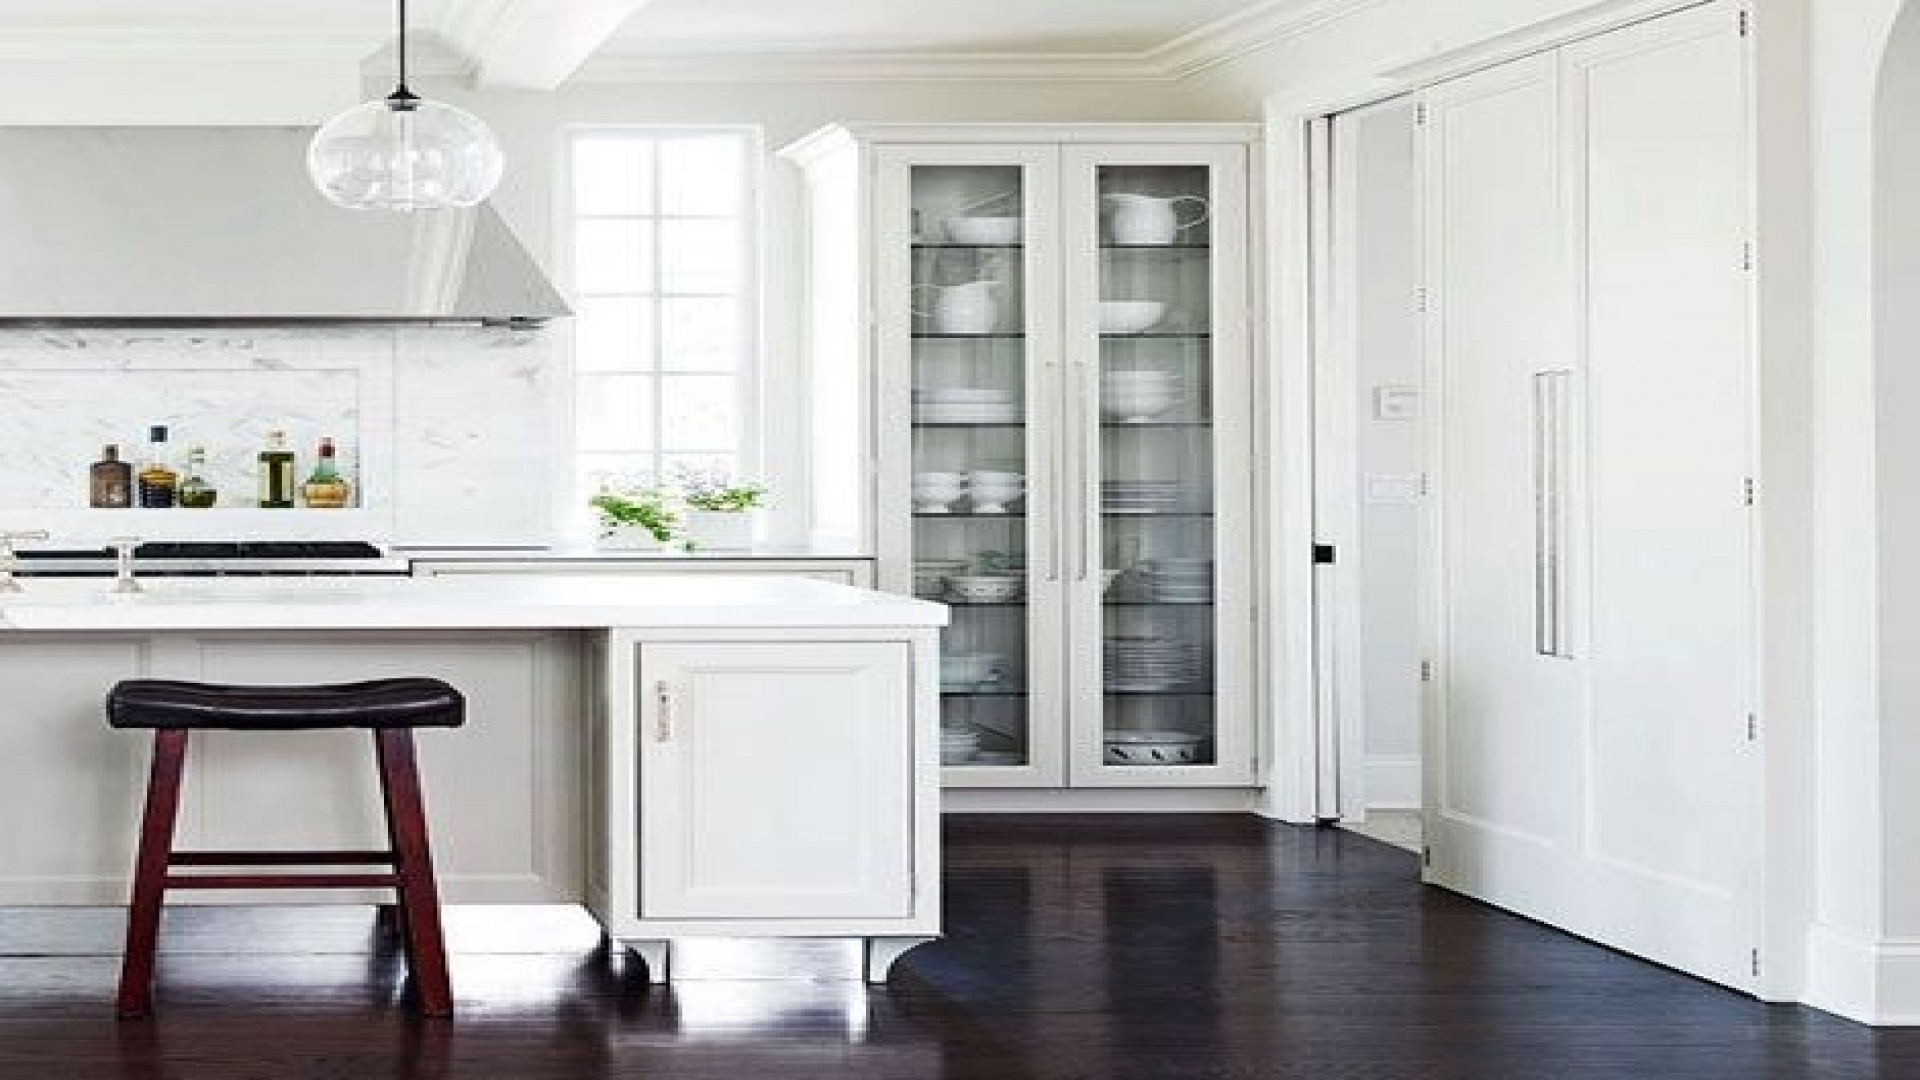 Gray Hardwood Floors In Kitchen Of 41 Inspirational White and Gray Kitchens Gallery Living Room Decor Pertaining to White Kitchen Gray Floor New Kitchen with White Cabinets Luxury Kitchen Cabinet 0d Home